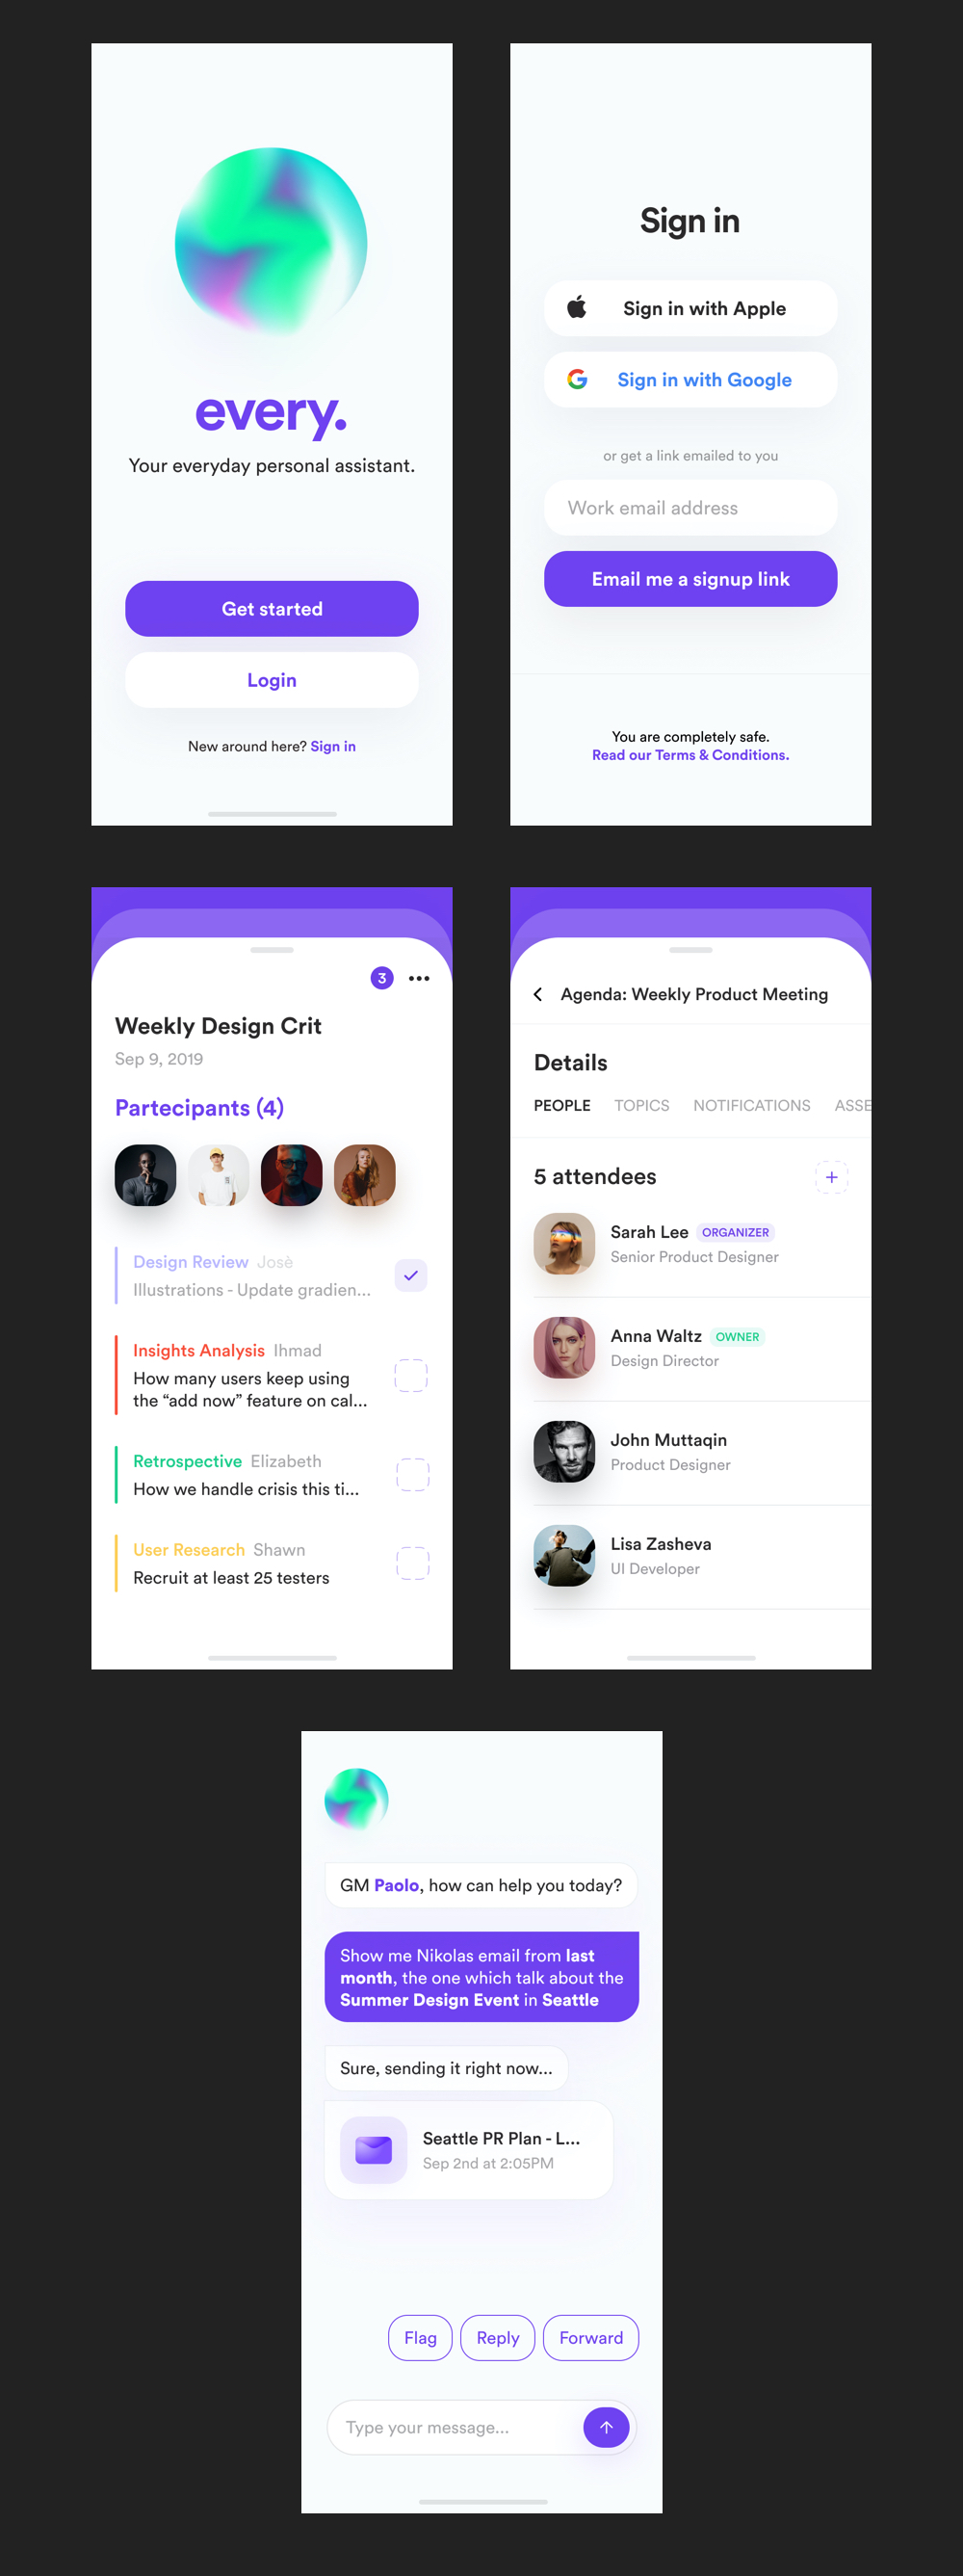 every. UI Kit for Figma - every. is a mobile app concept representing a personal assistant that can help you through your daily office routine